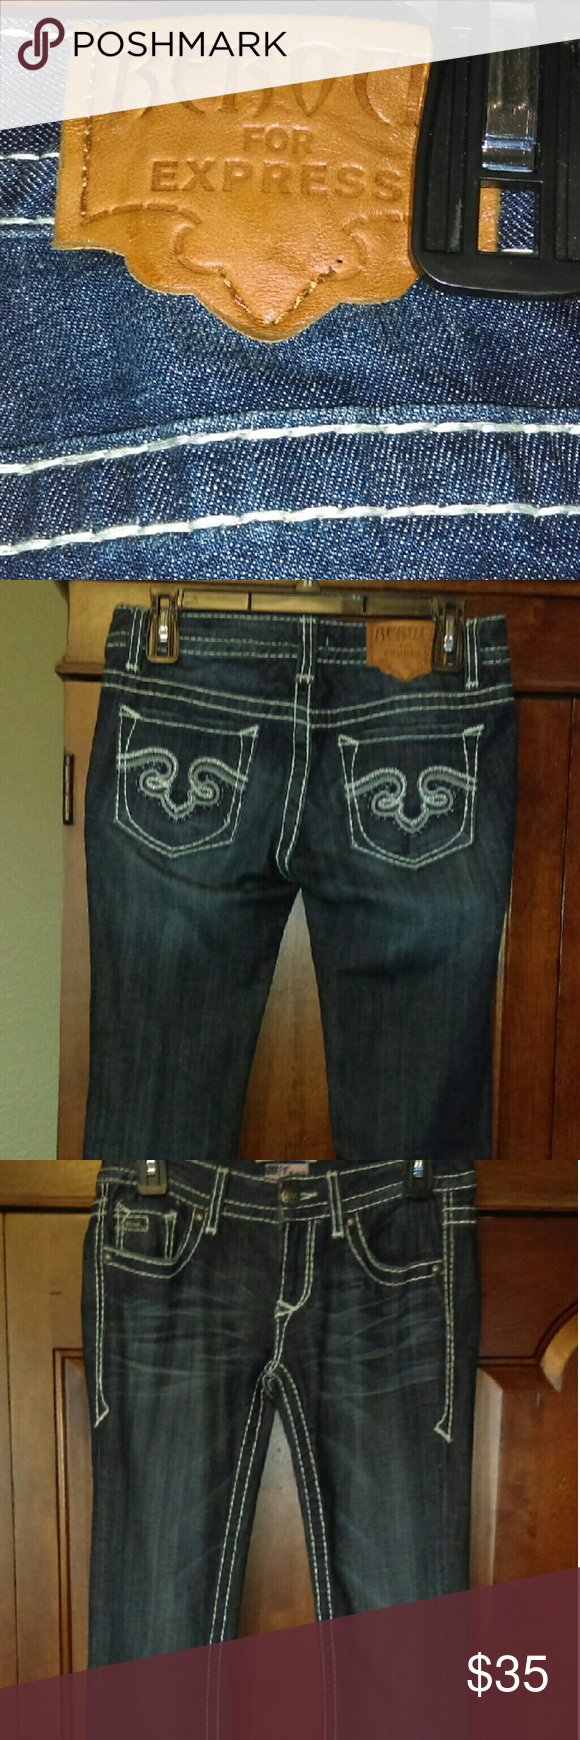 ReRock express jeans | D, Shopping and Fashion